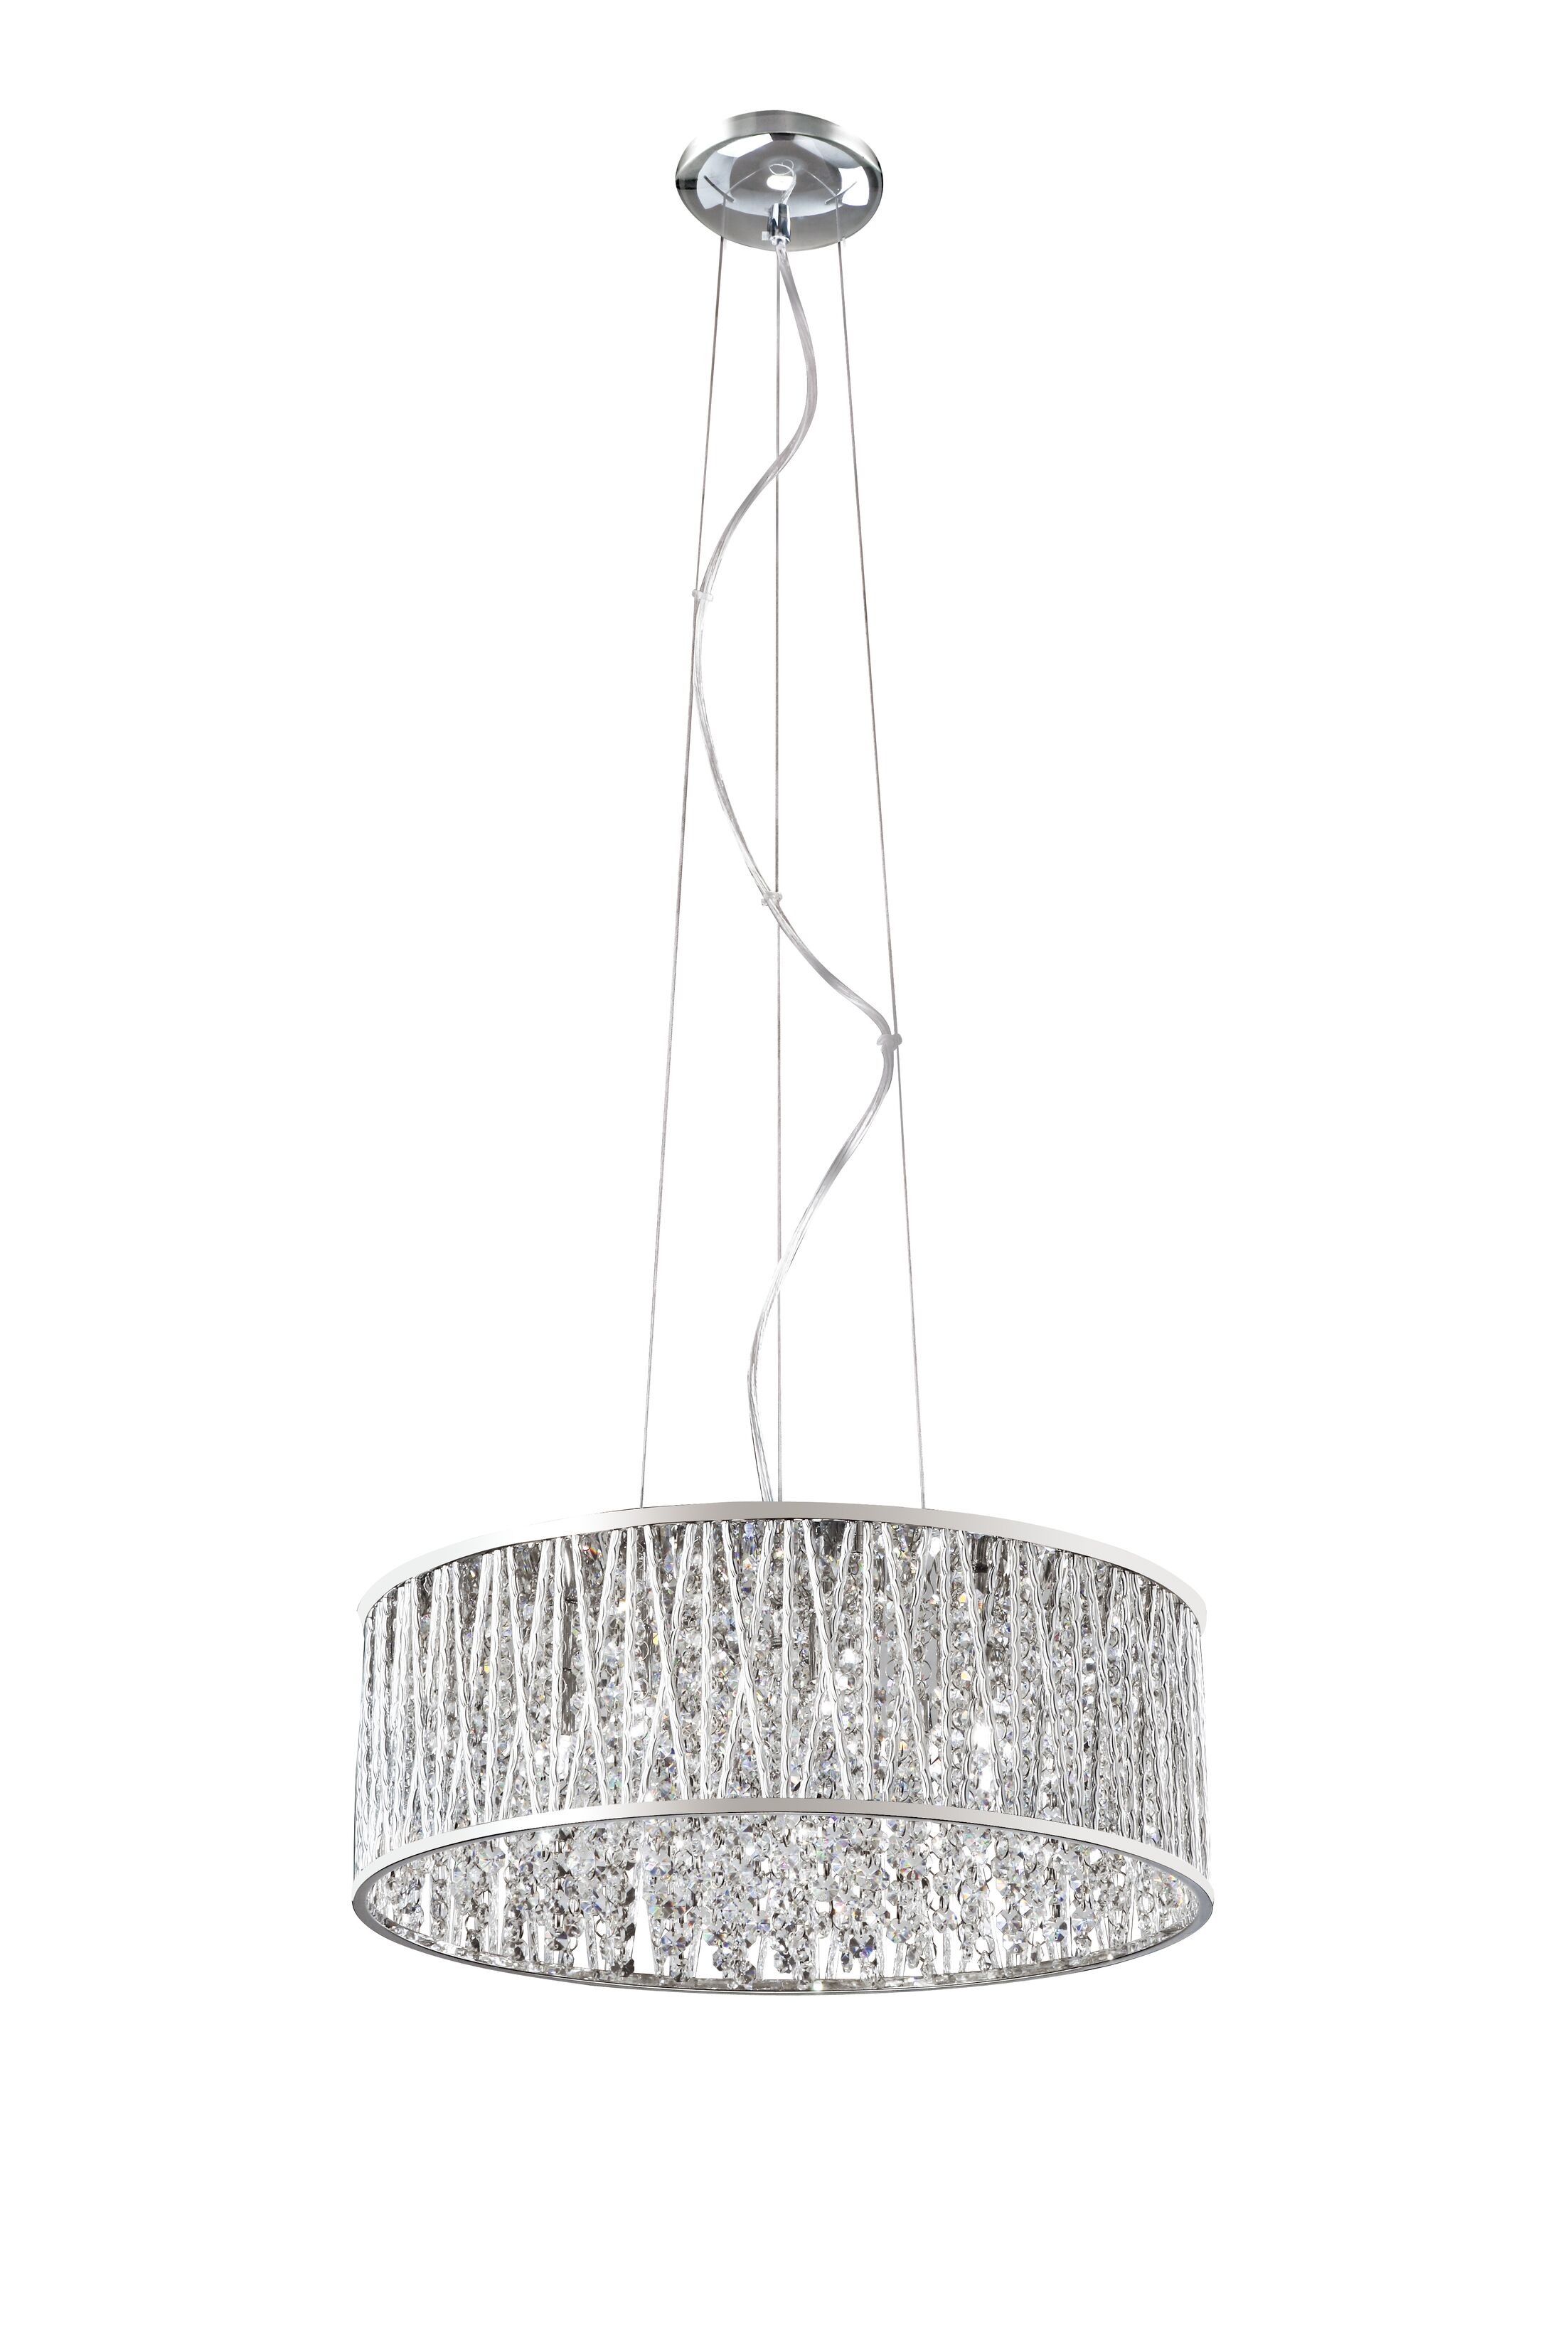 Longchamps 7-Light Crystal Chandelier